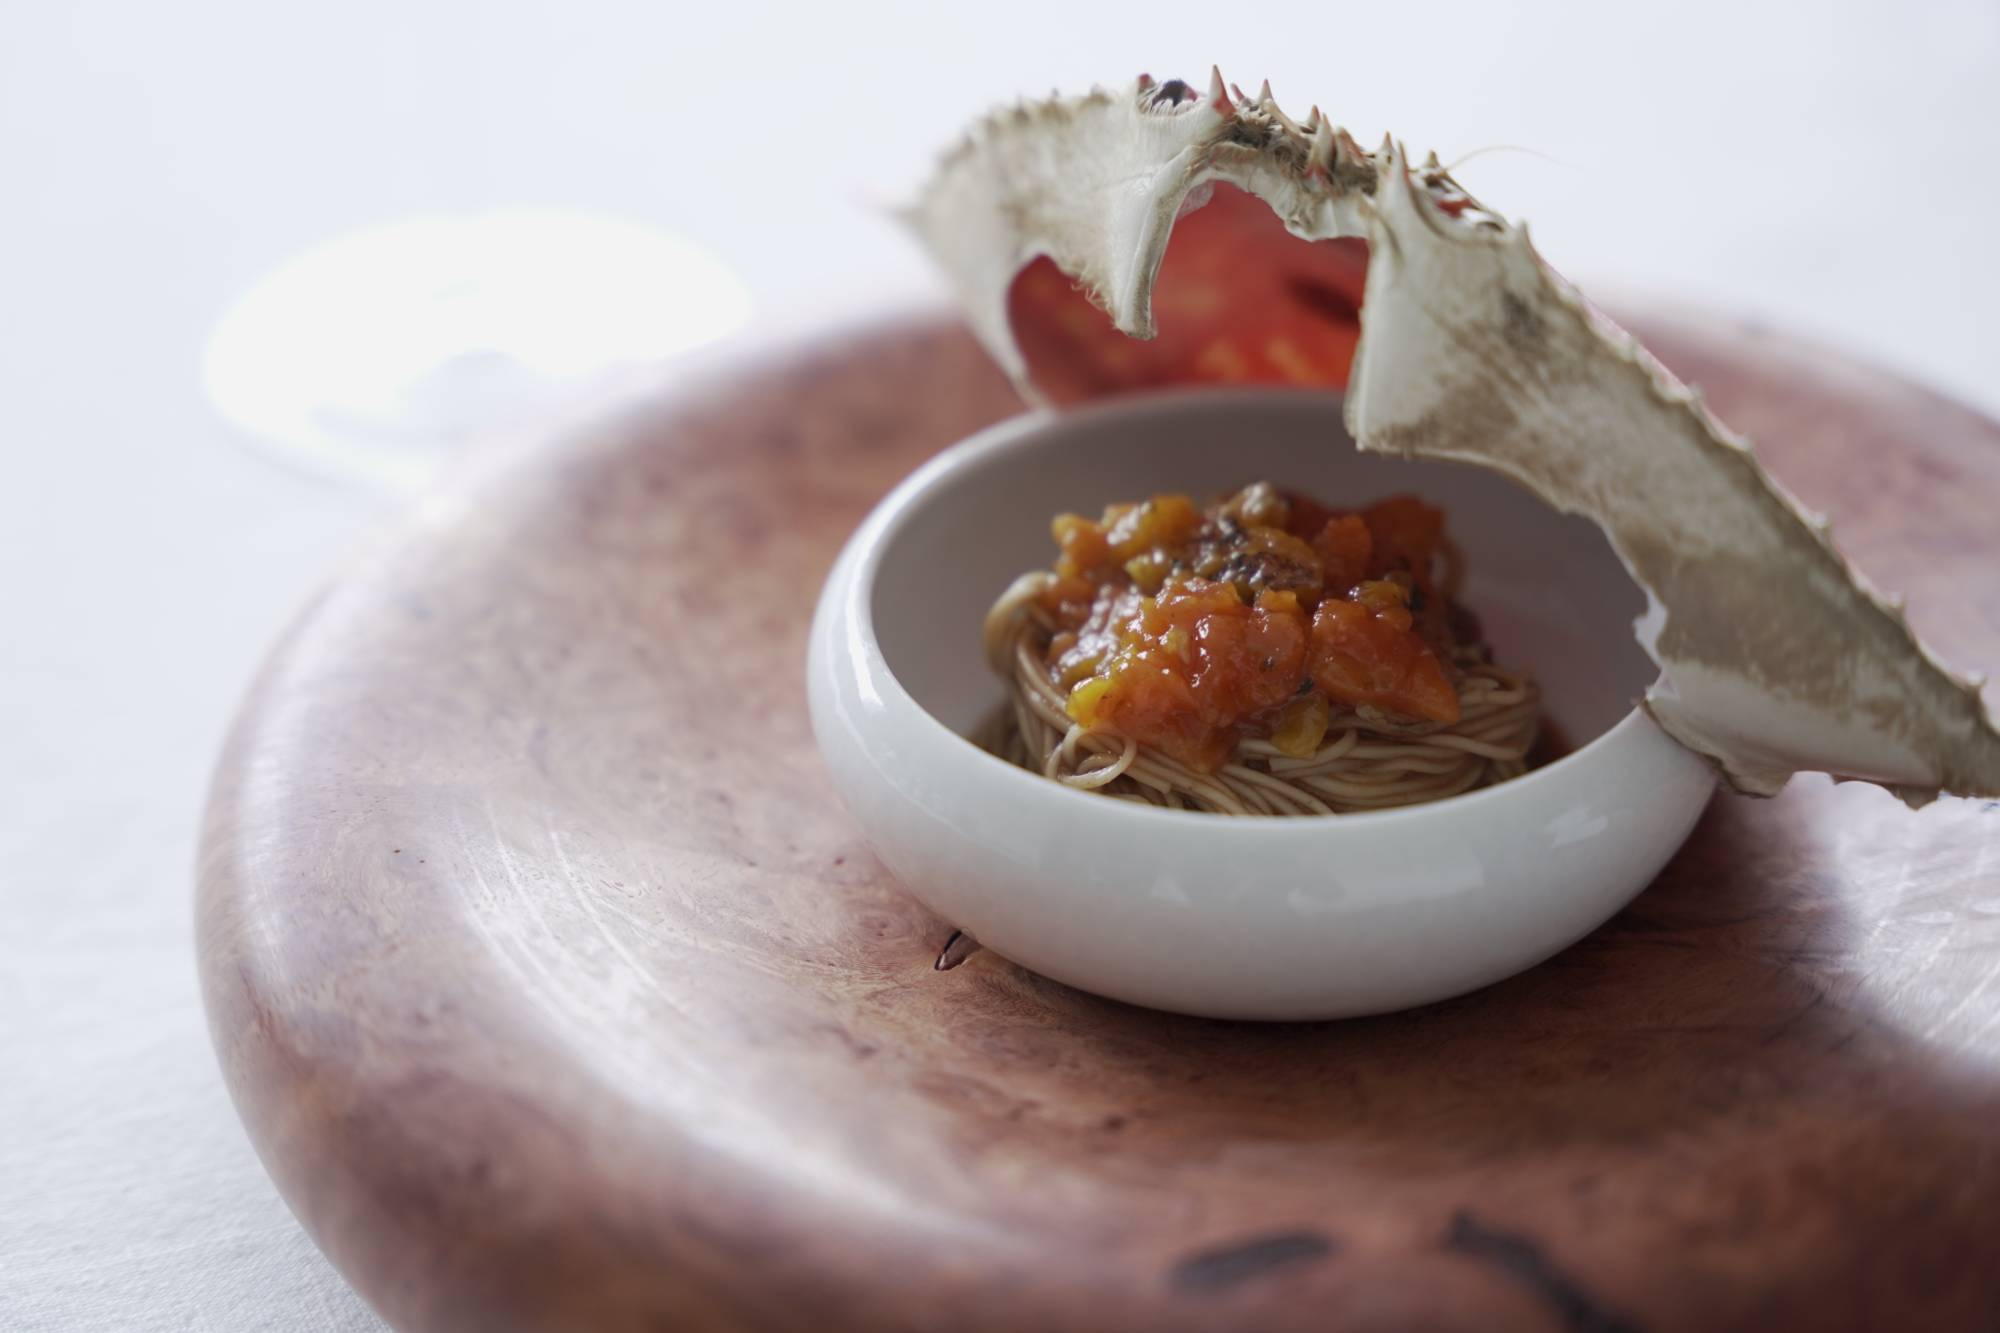 Tenobe sōmen wheat noodles dunked into a dark, savory sauce of crab innards, twisted tightly and served with chunks of crab meat. | NAOH INC.